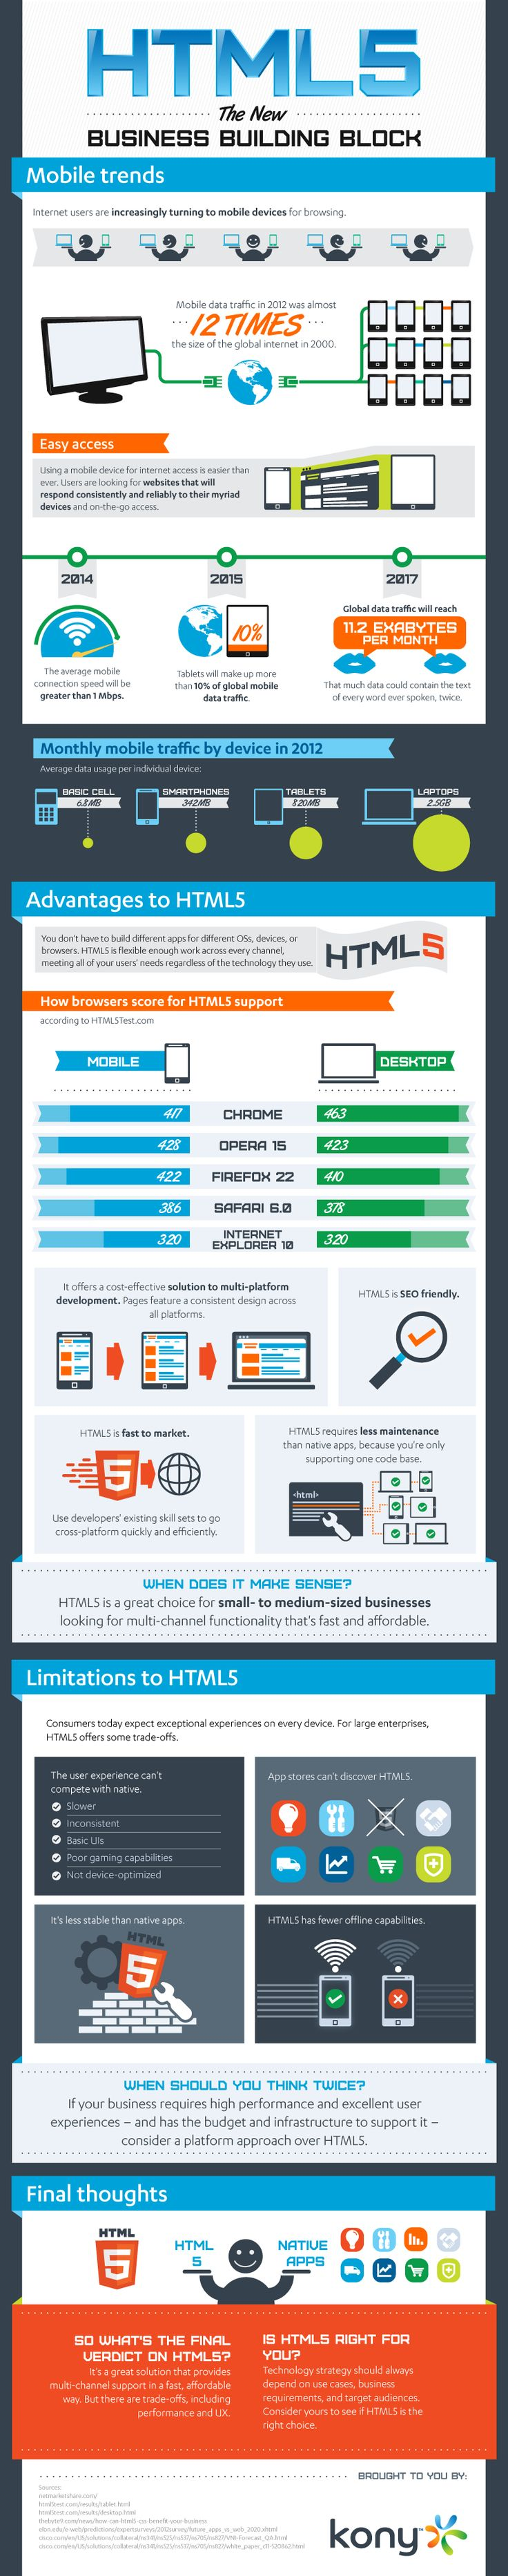 An in-depth look at the various analyst projections and research around HTML5.